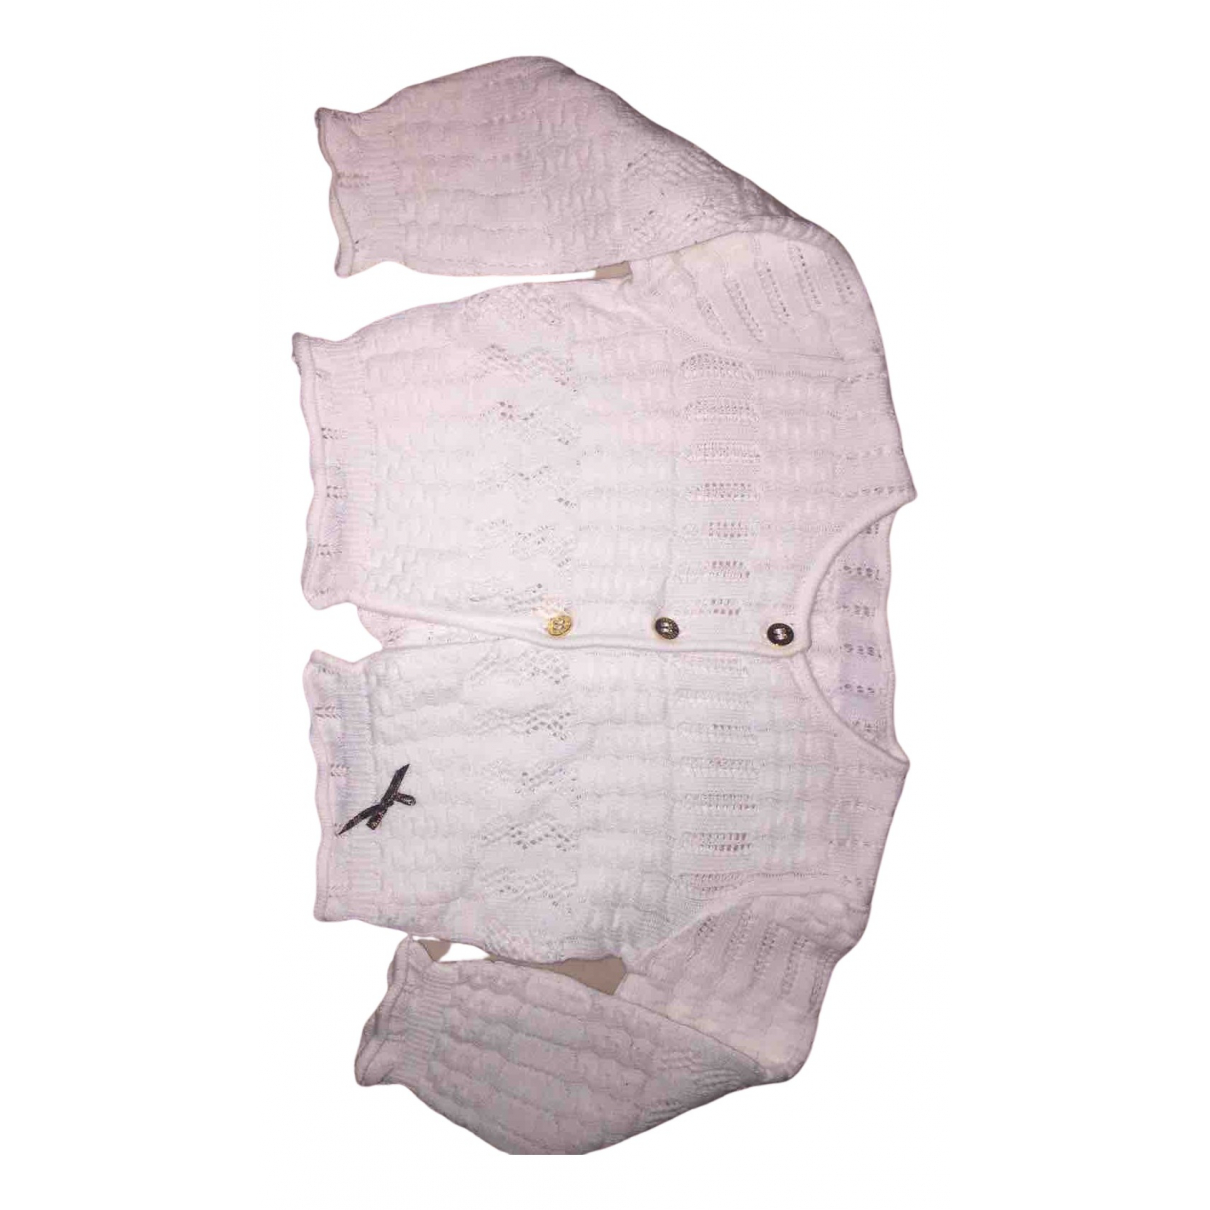 Roberto Cavalli N White Cotton  top for Kids 6 months - up to 67cm FR